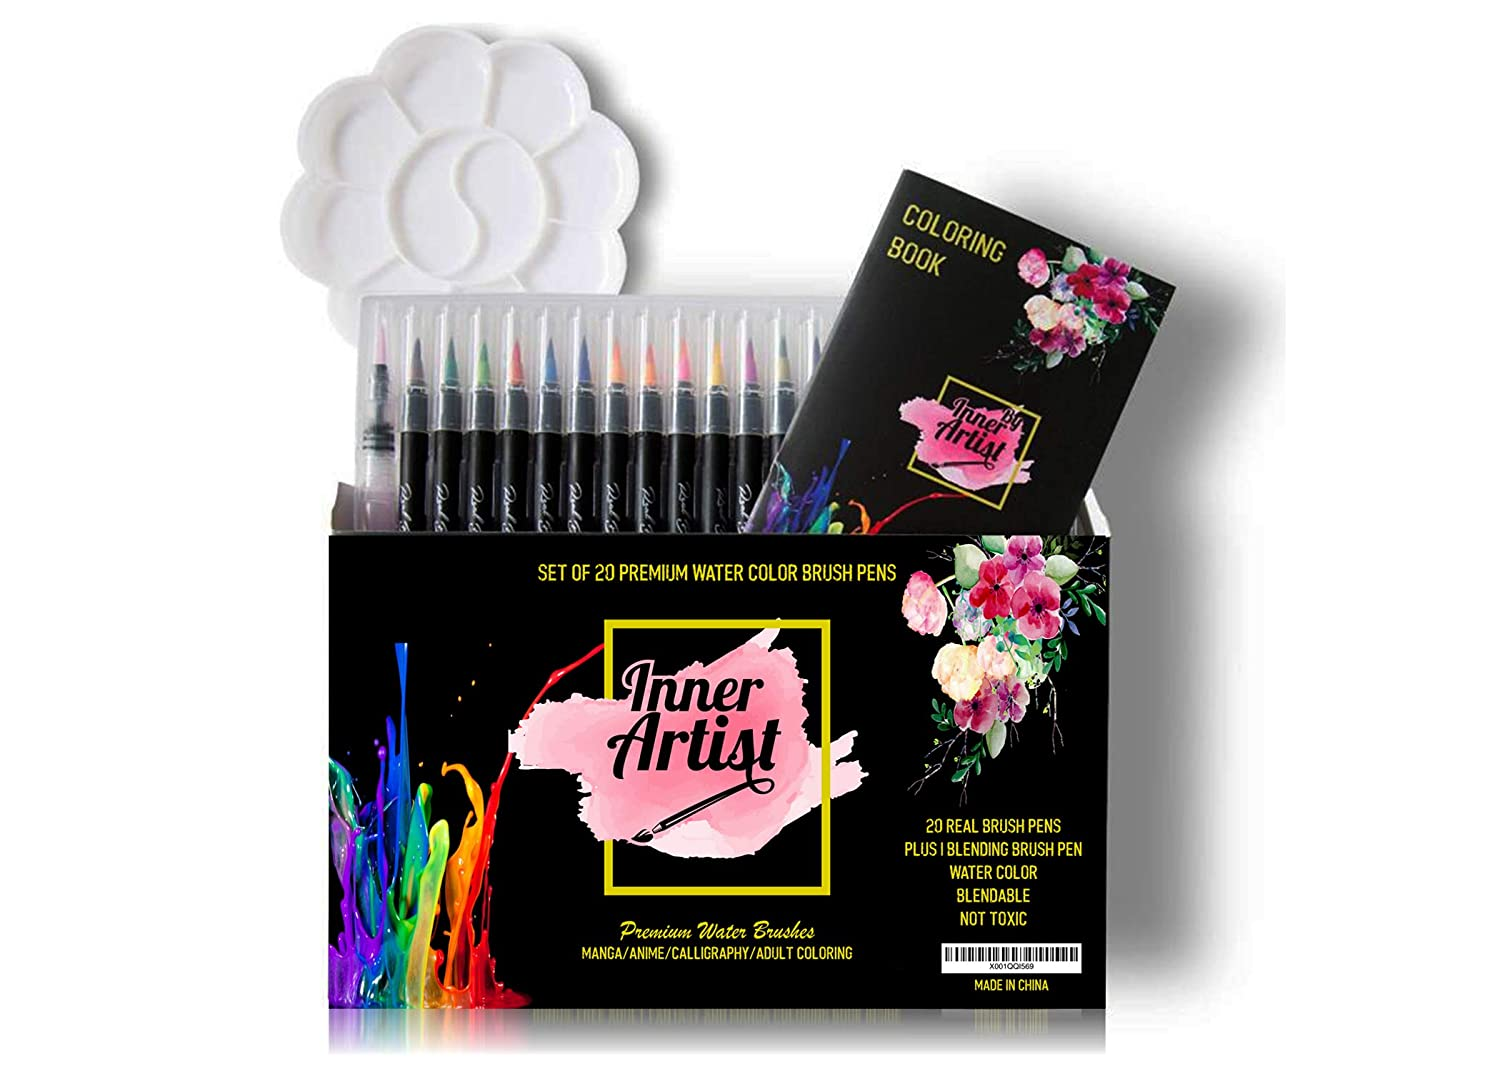 Real Brush pens: Watercolor 20+1 Flexible Water Pen Paint Set Nylon Tip Markers. Free Coloring Book Included Plus Palette.for Manga Anime Comic Cartooning Calligraphy & Color Art Books Supplies Genie Depot